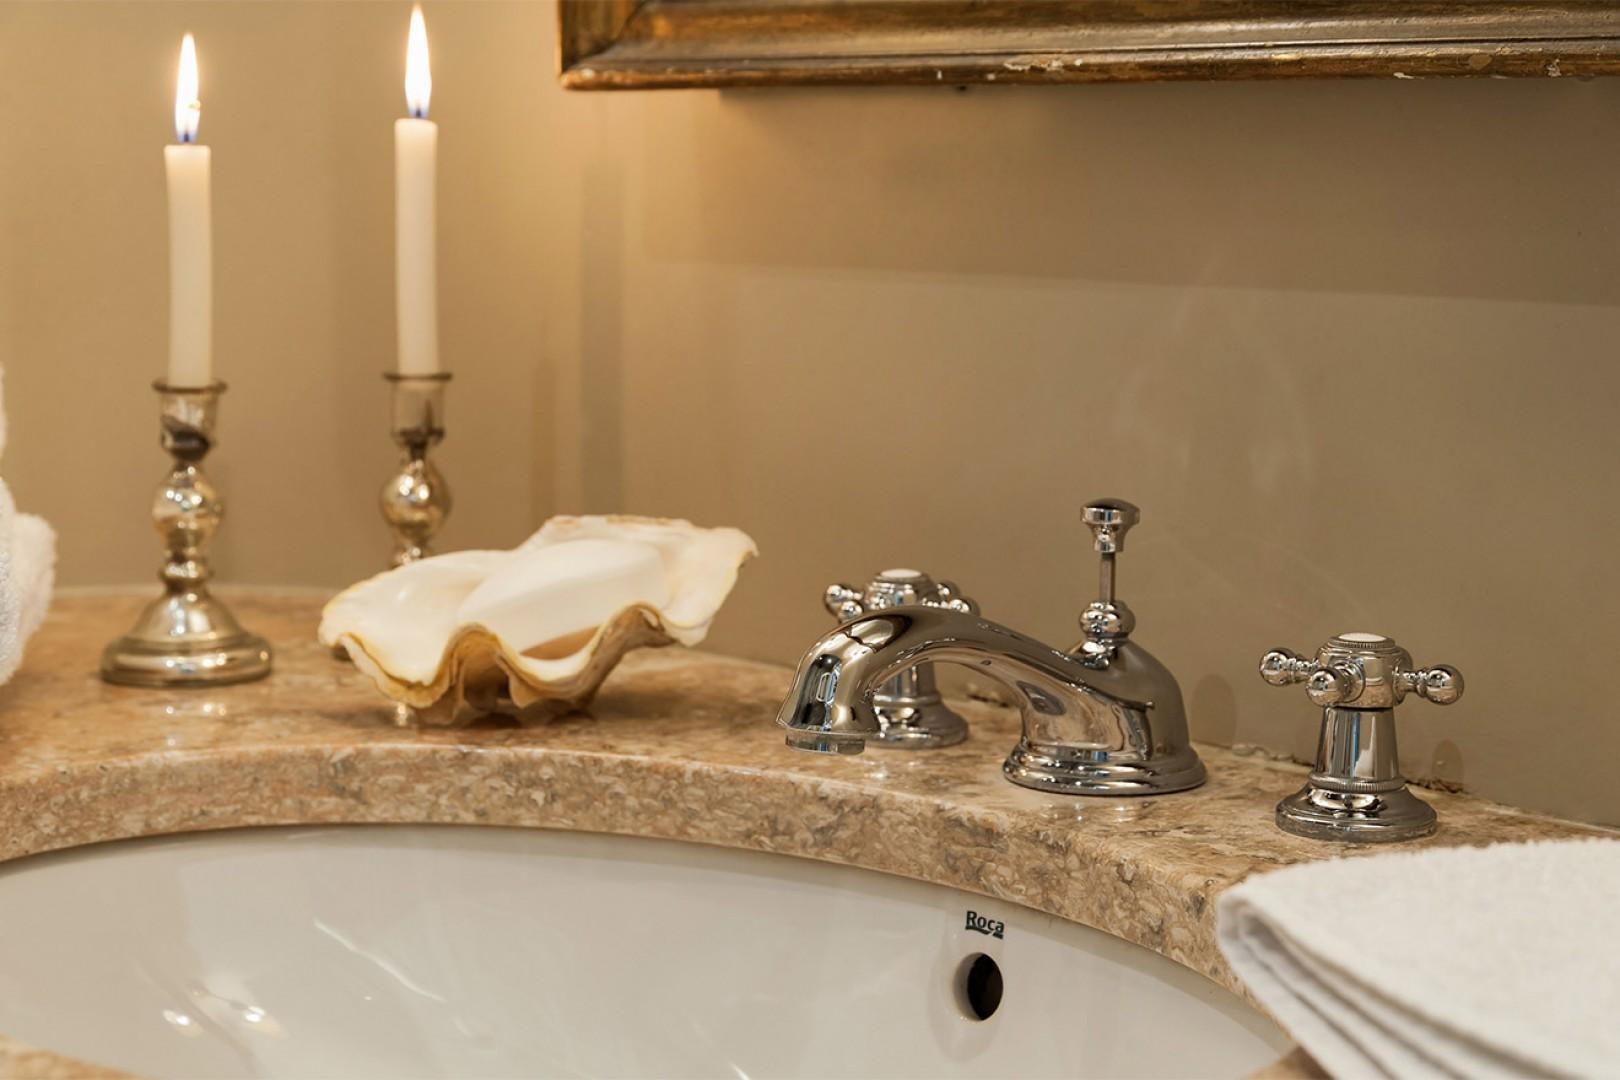 Even the bathroom is chic in the Lussac apartment!